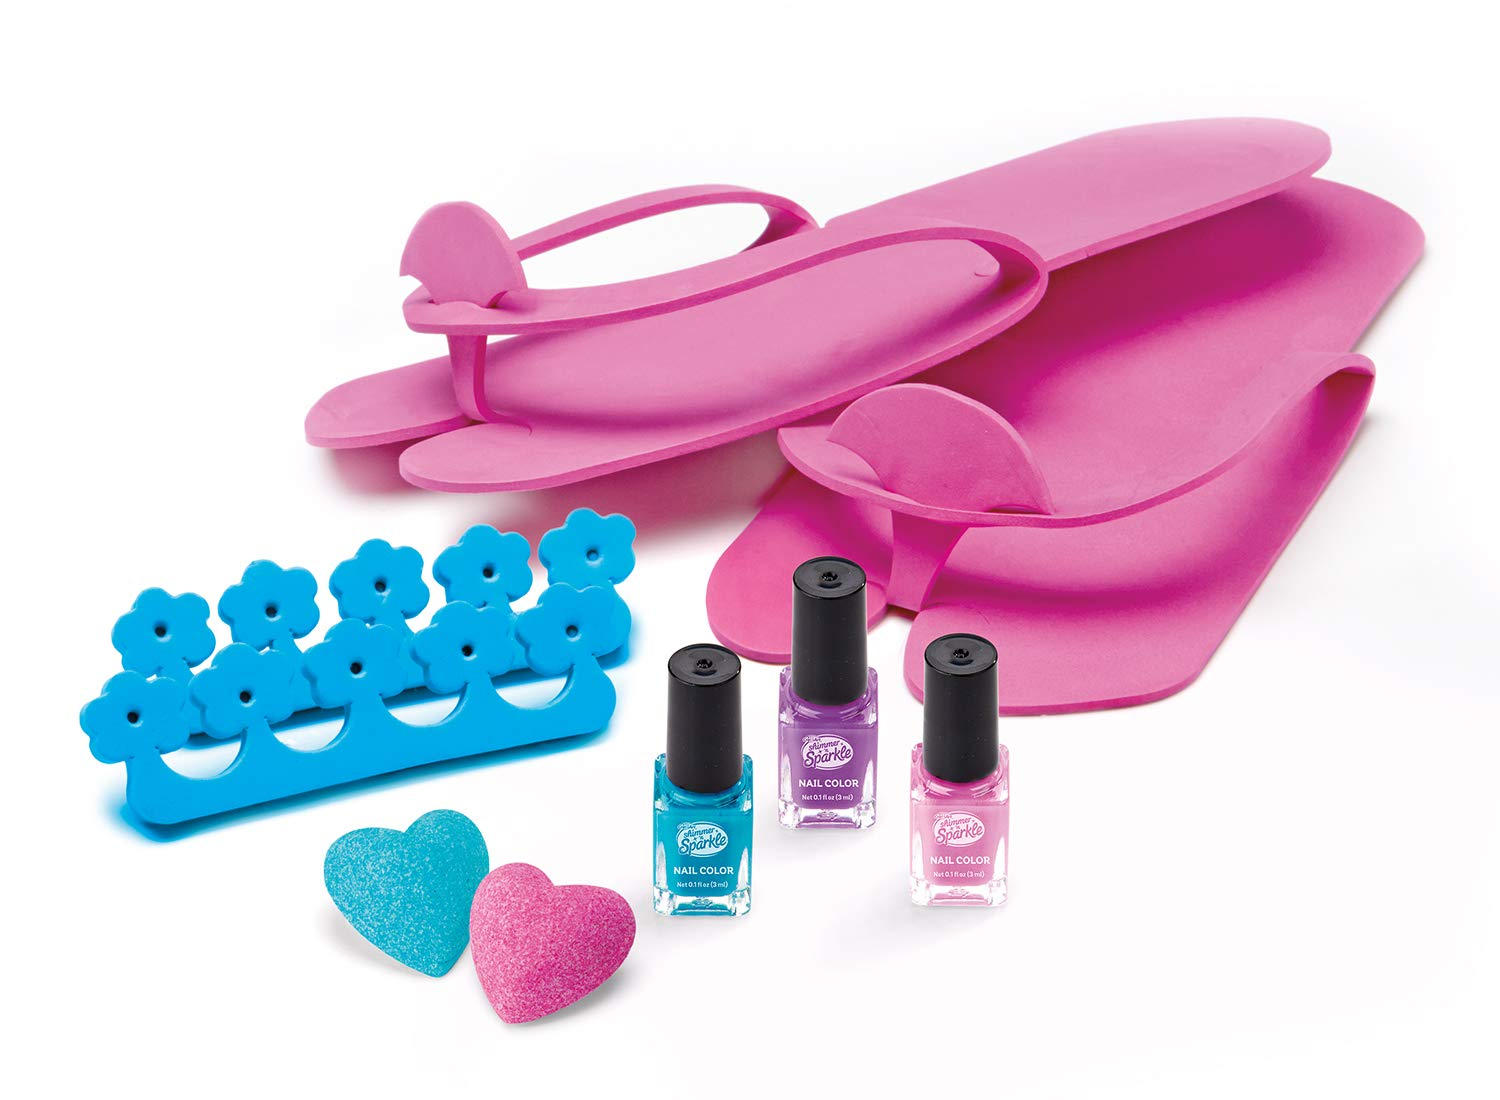 CRA-Z-ART Shimmern Sparkle SPA Set de cosmética para pies y pedicura ColorBaby 43921: Amazon.es: Juguetes y juegos